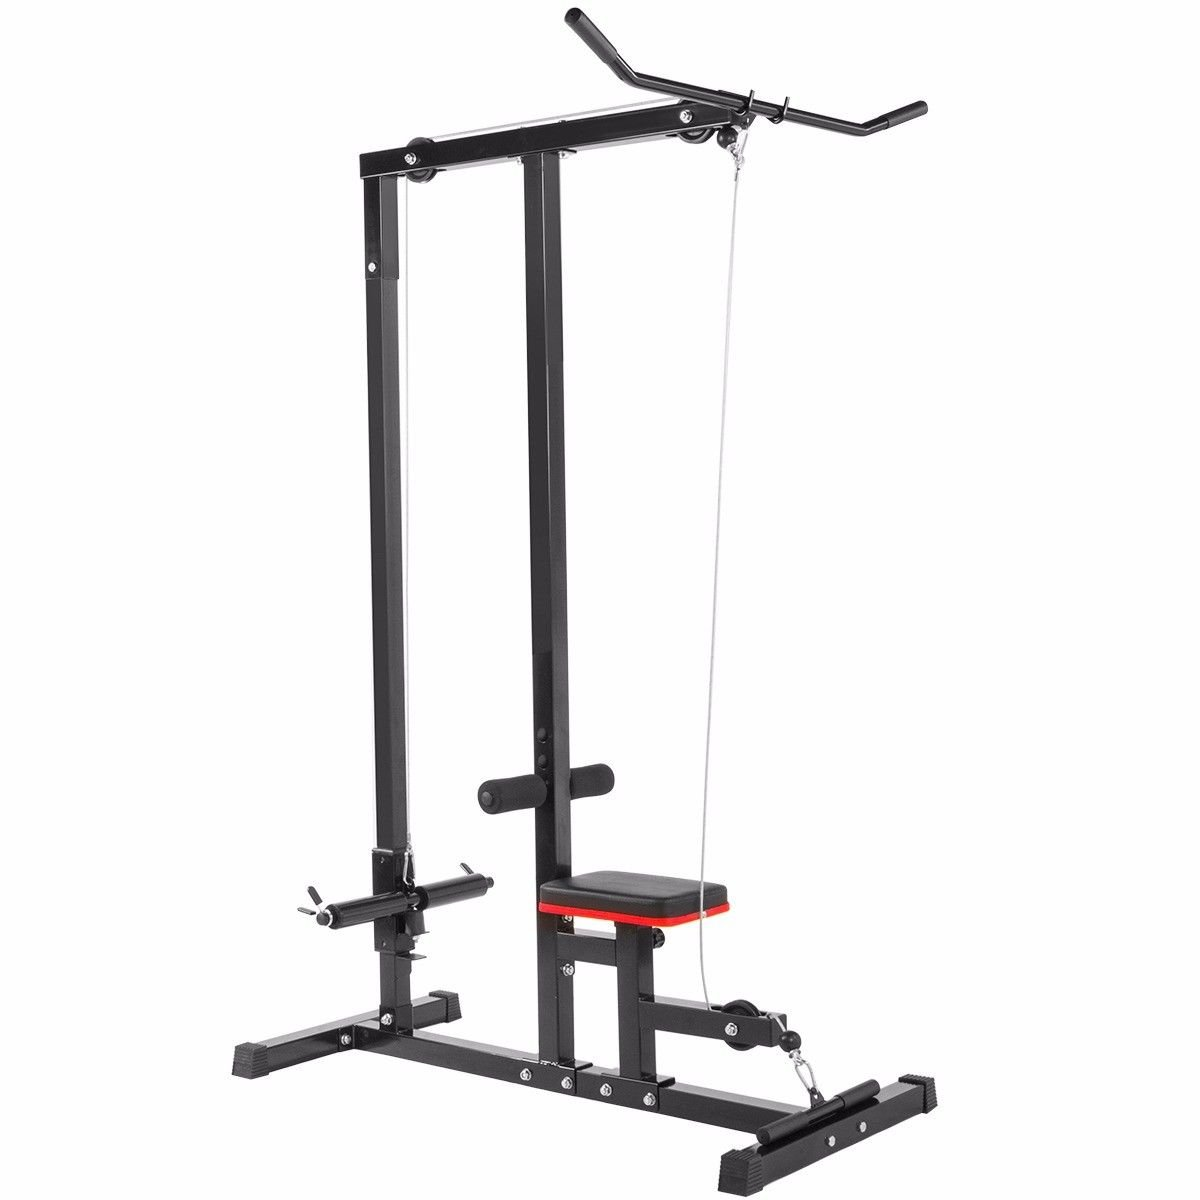 Home gym body Lat Pull down Machine Low Row Bar Cable Fitness weigh training by BUY JOY